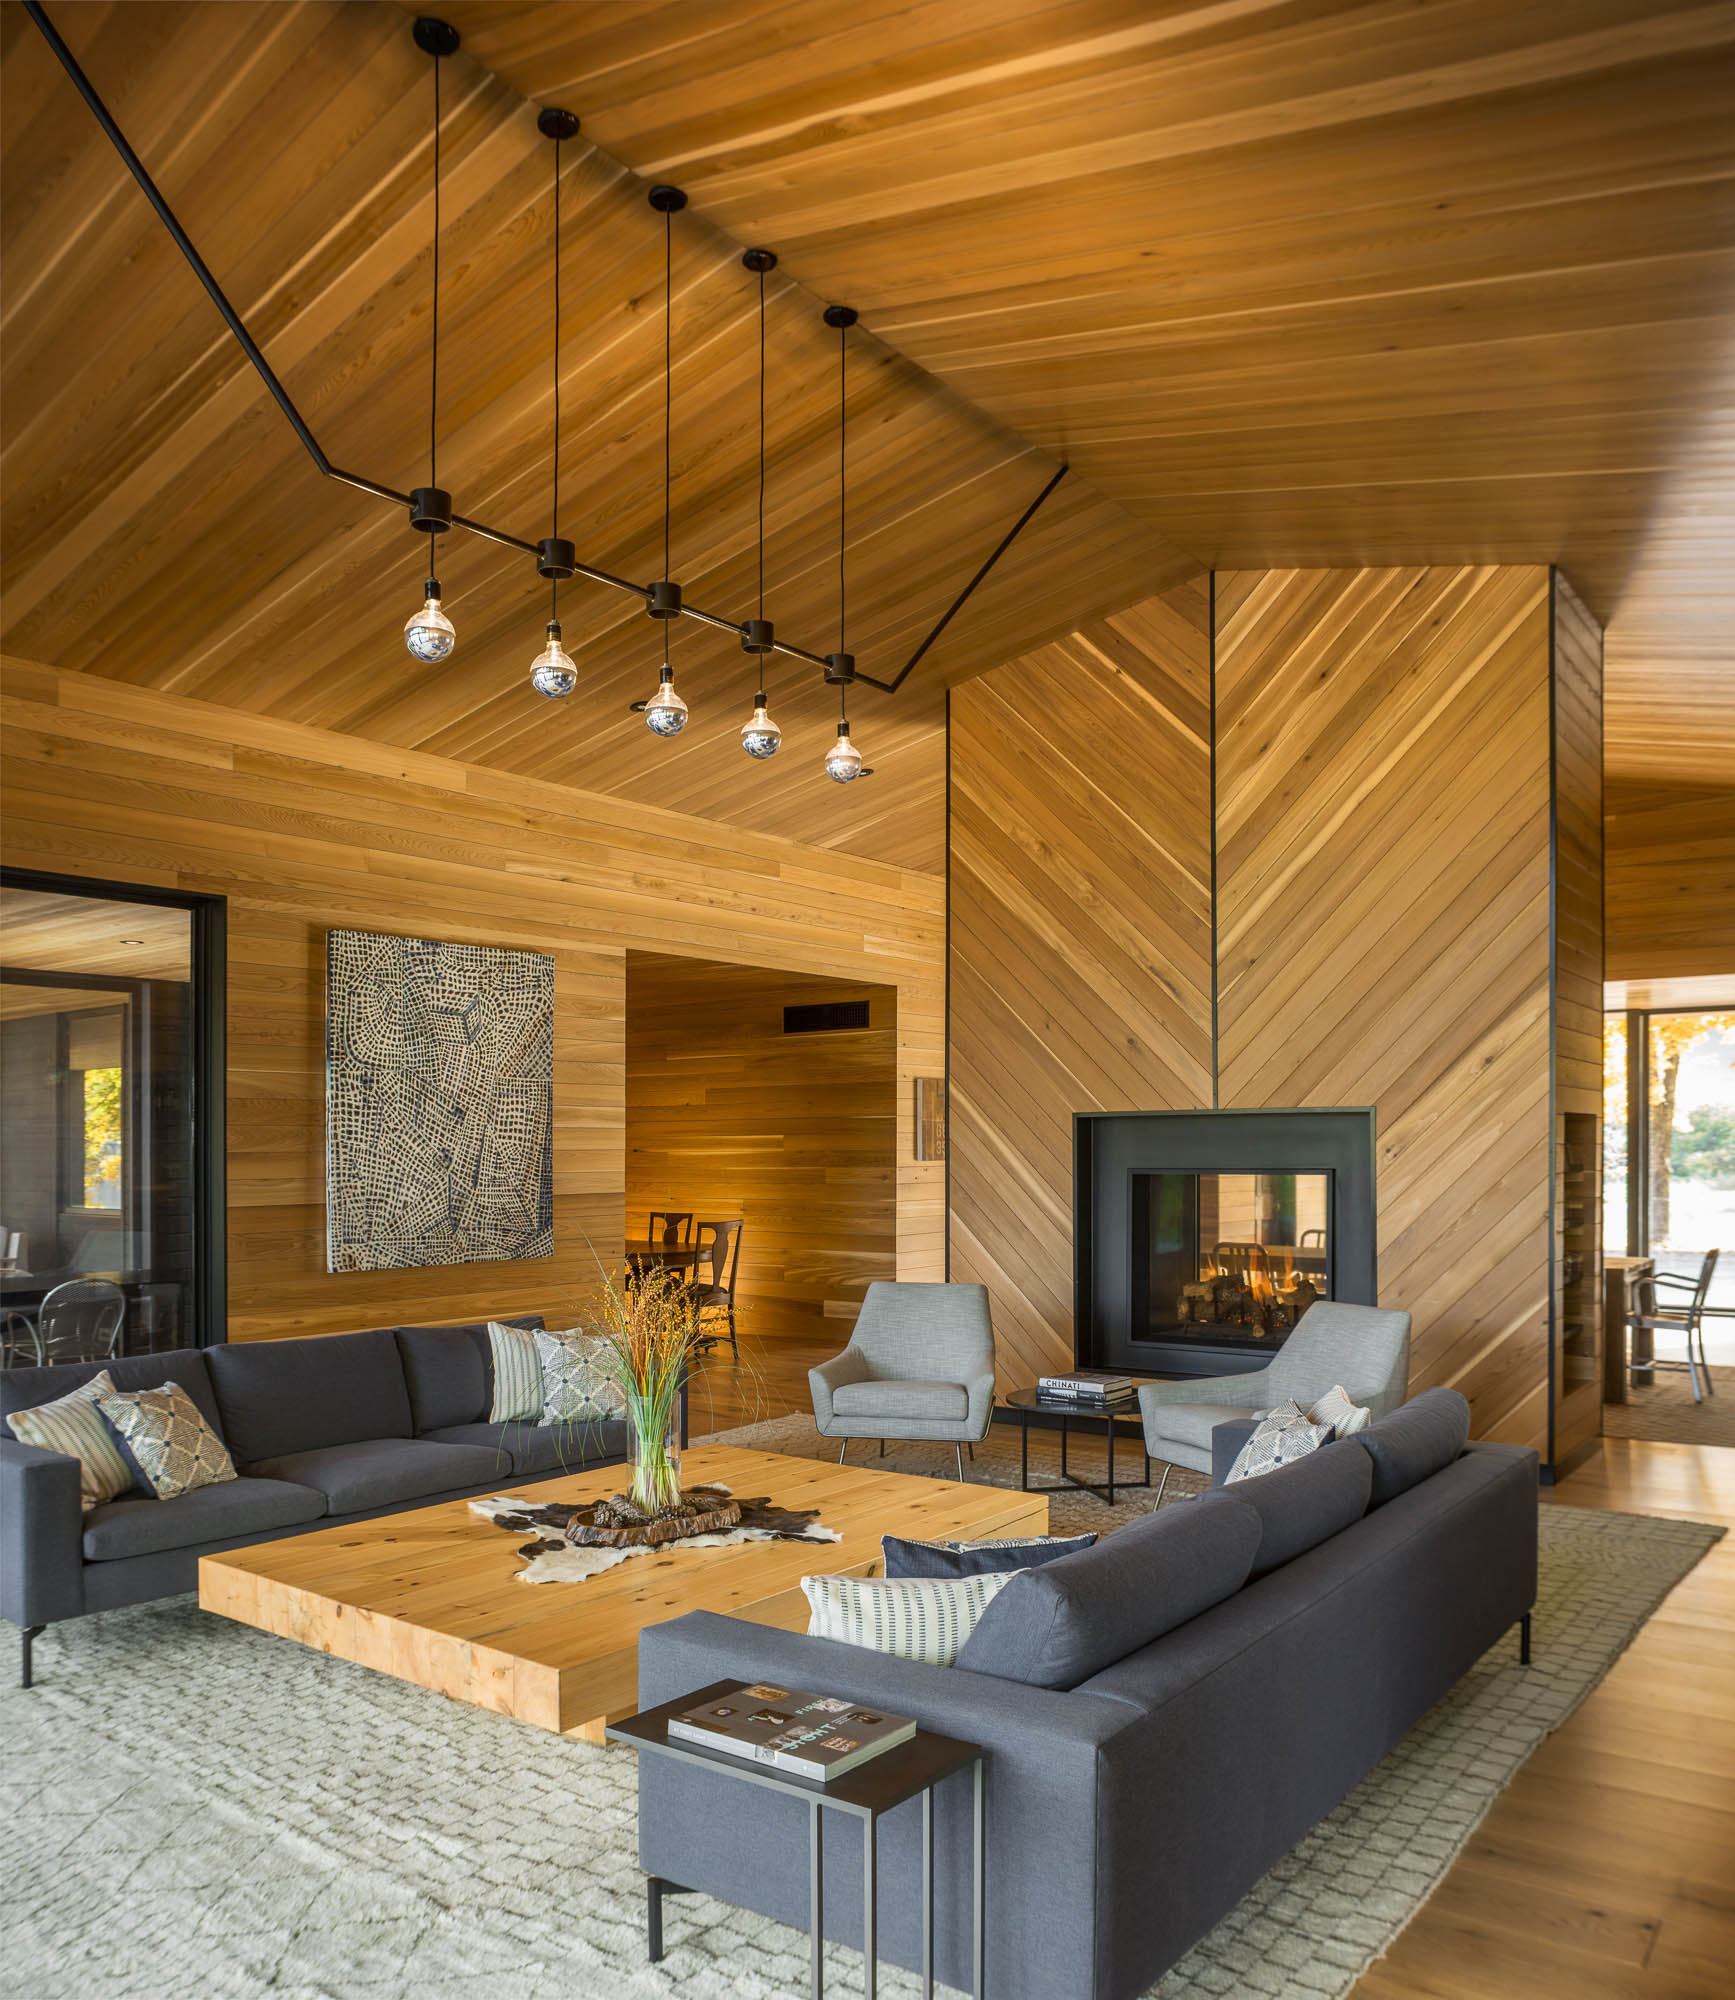 A modern living room with a glass front fireplace, a large coffee wood coffee table, a unique lighting element, and wood-lined walls and ceiling.